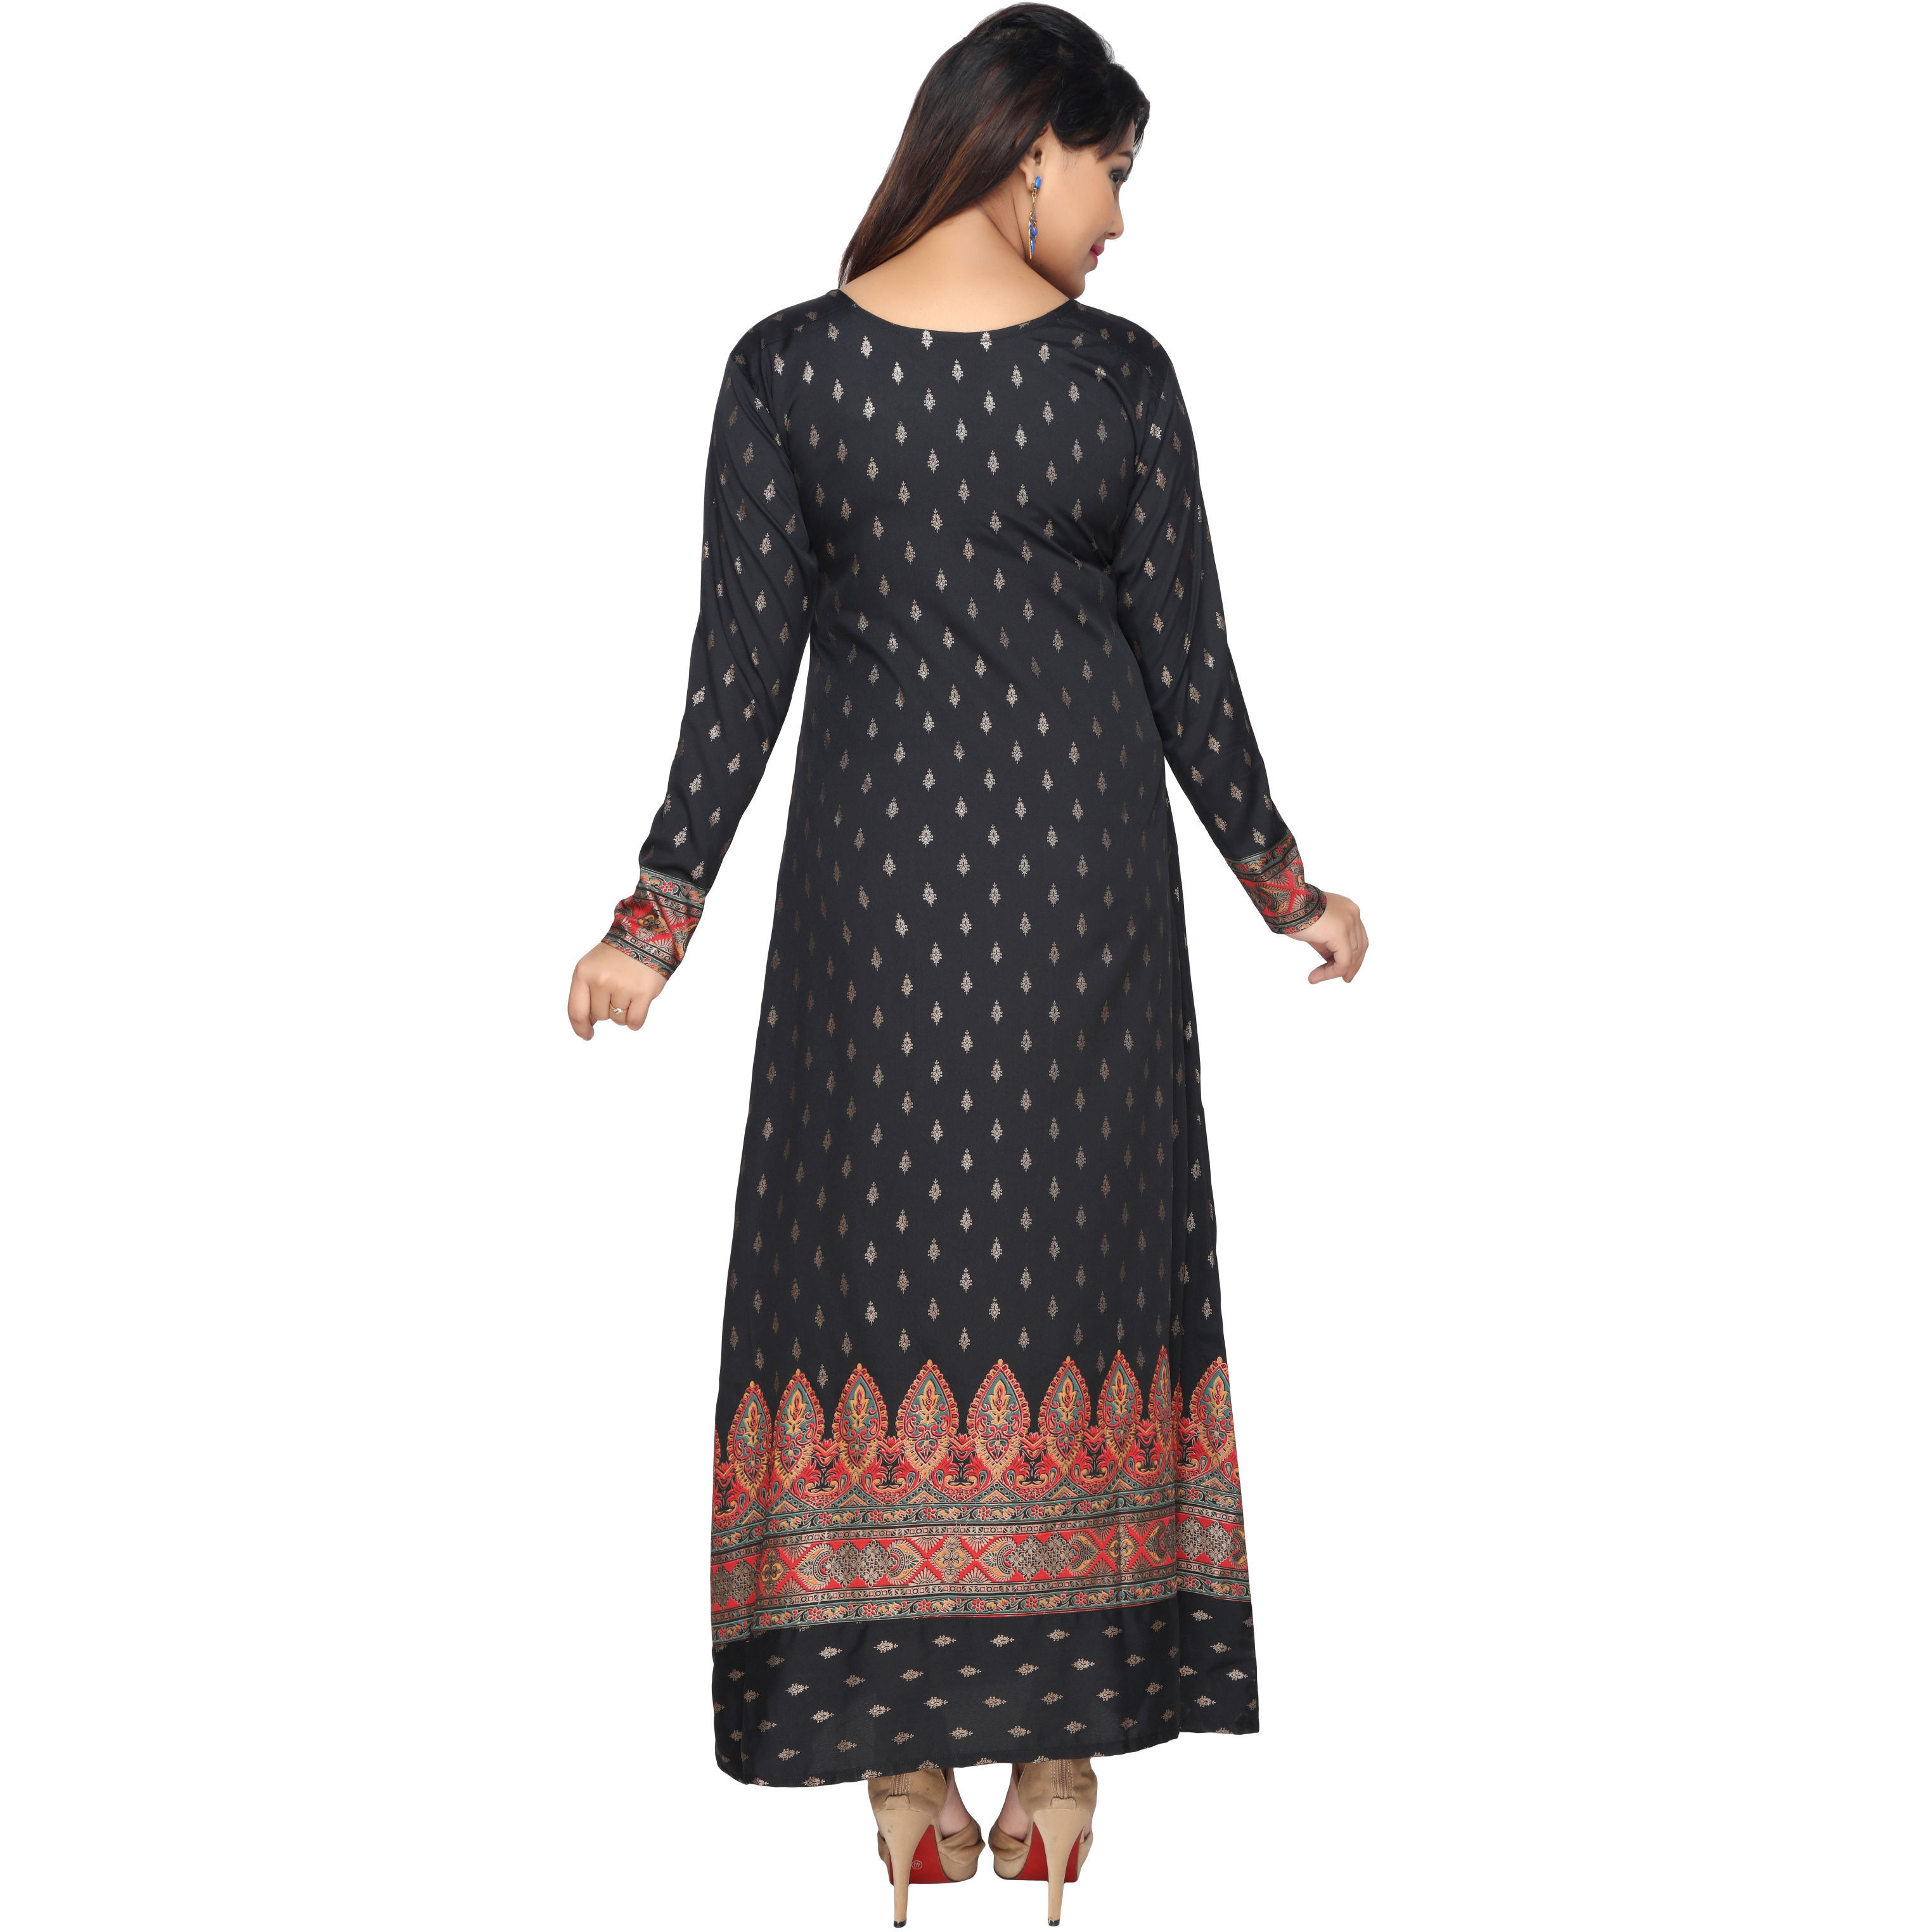 TrendyFashionMall Gold Print Kaftans Maxi Dresses with design in Front and Back (Color:TFMKFT01031-BLACK-RED, Size:52 - 5X-LARGE)